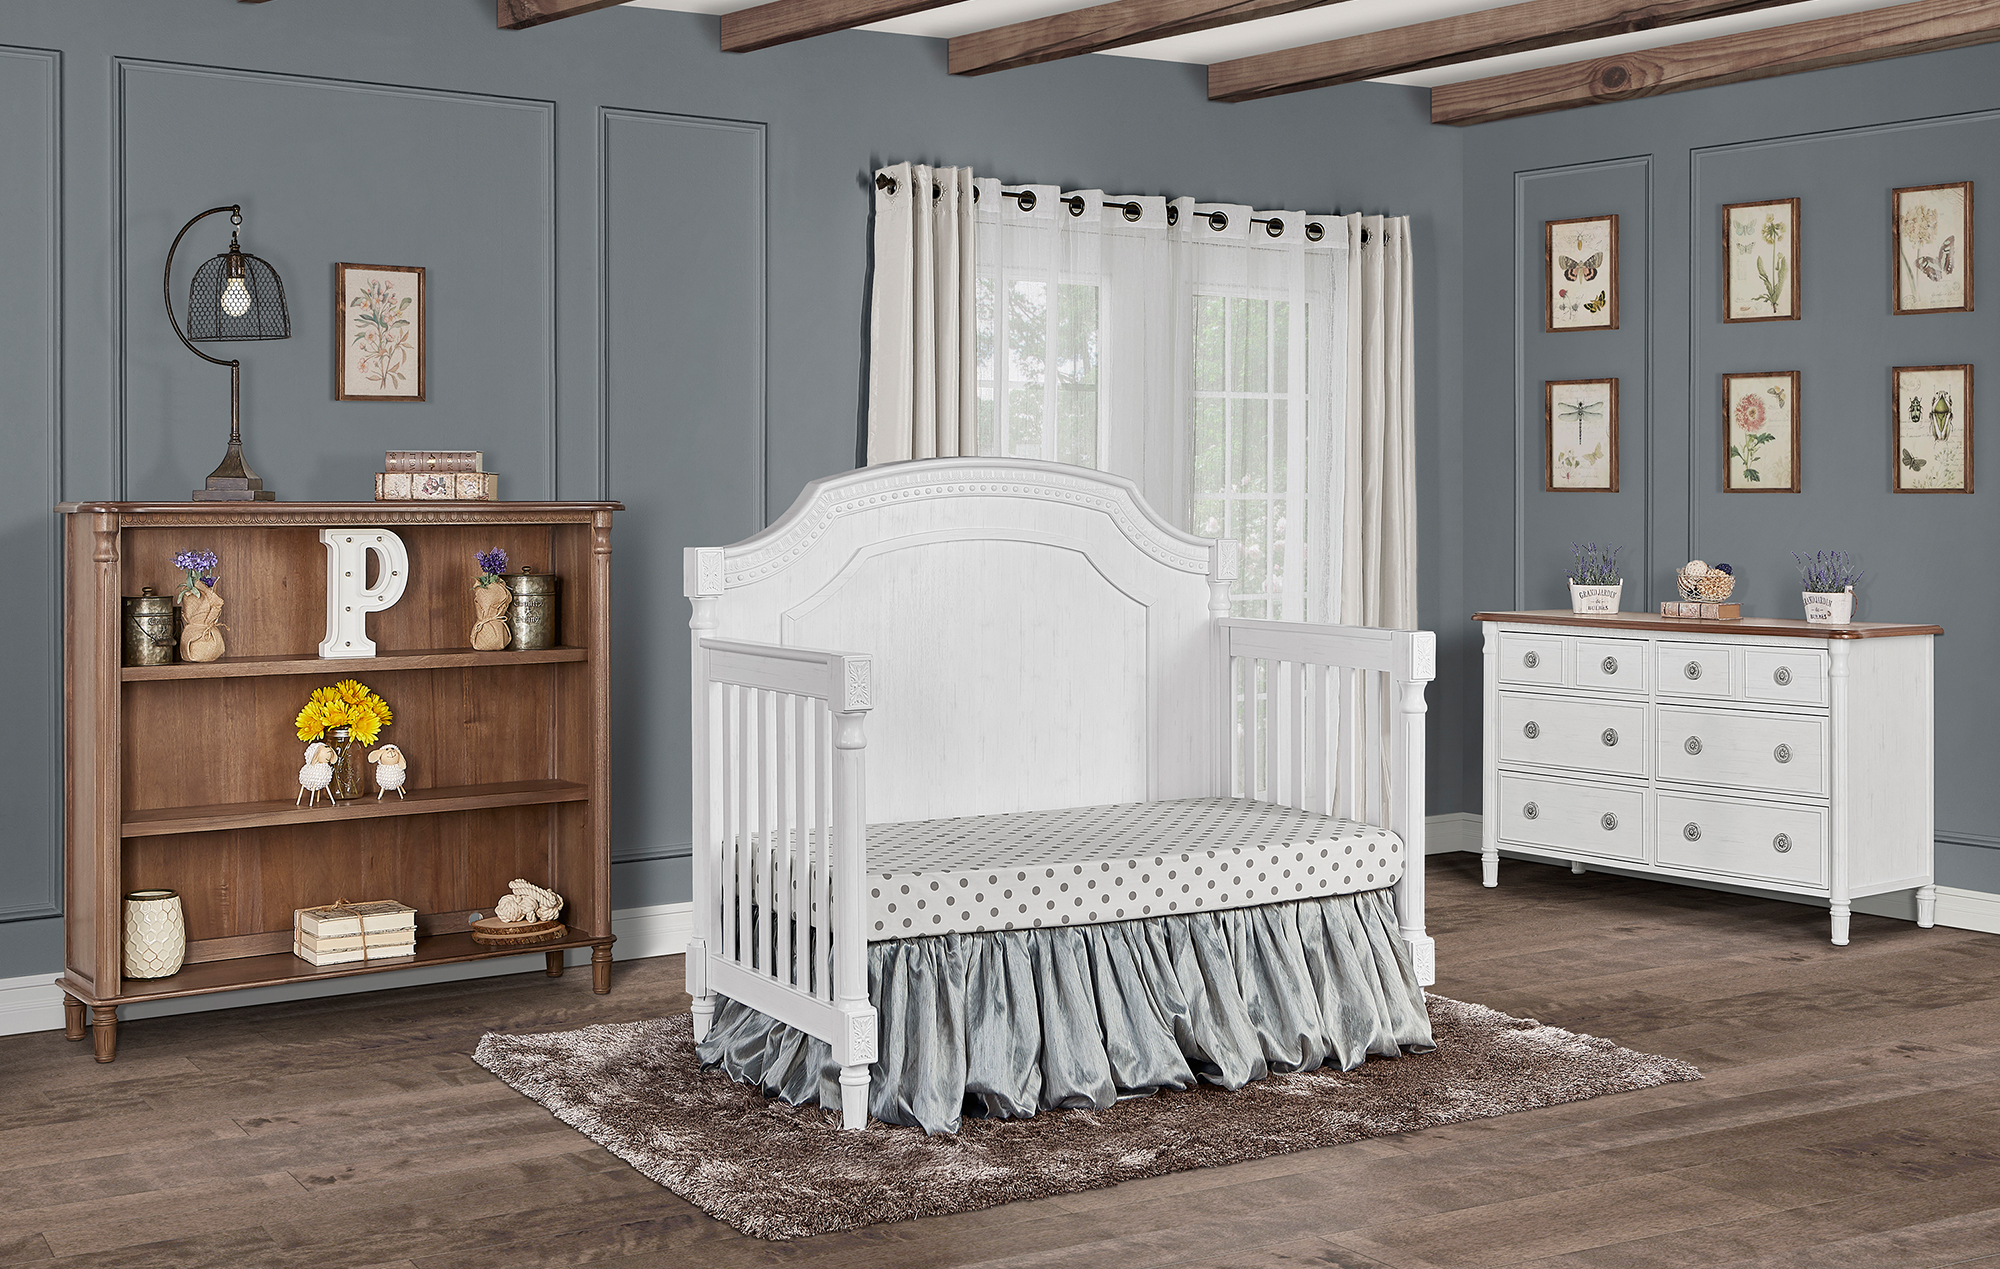 837-BW Evolur Julienne Day Bed RS